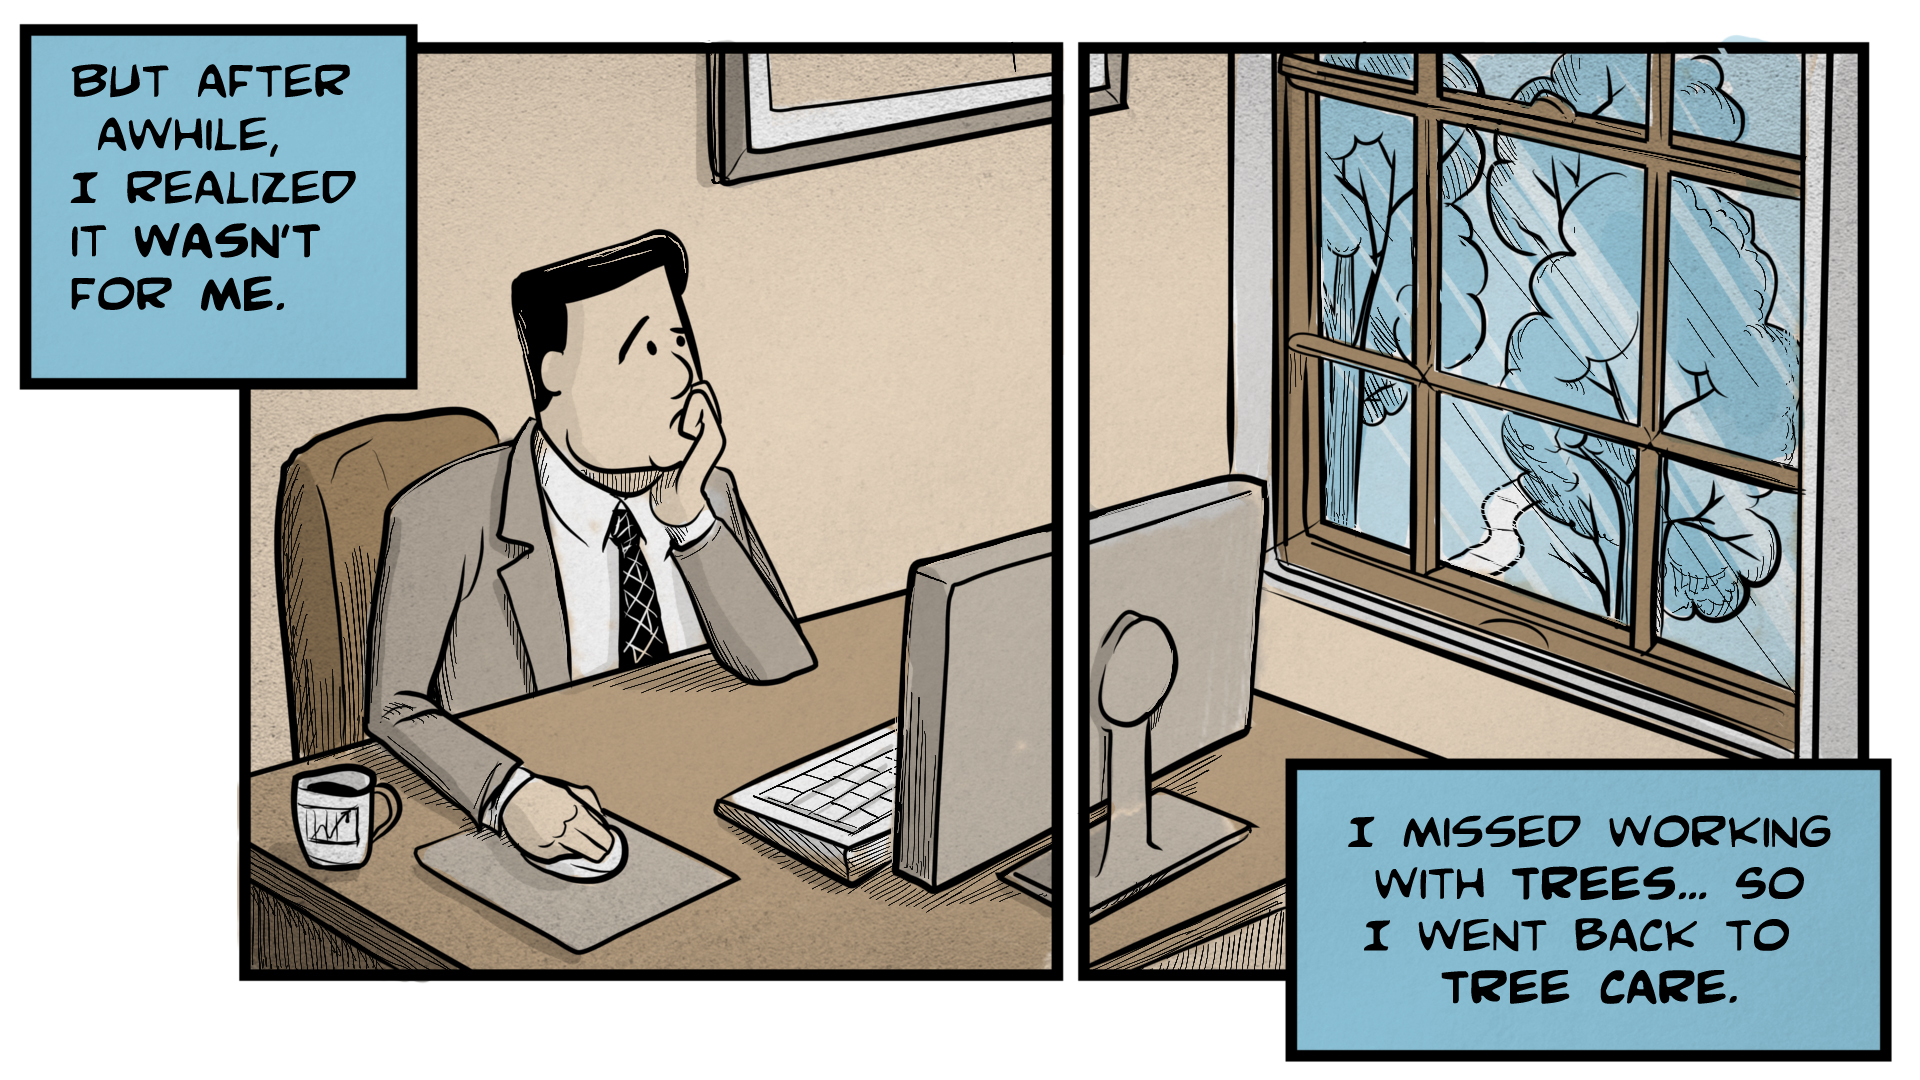 """Danny, the narrator, says, """"But after a while, I realized it wasn't for me. I missed working with trees... so I went back to tree care."""" The left frame shows him sitting at a desk, holding a mouse and looking at a computer screen. He looks sad. The right frame shows a view out of the office window onto a tree-filled landscape."""